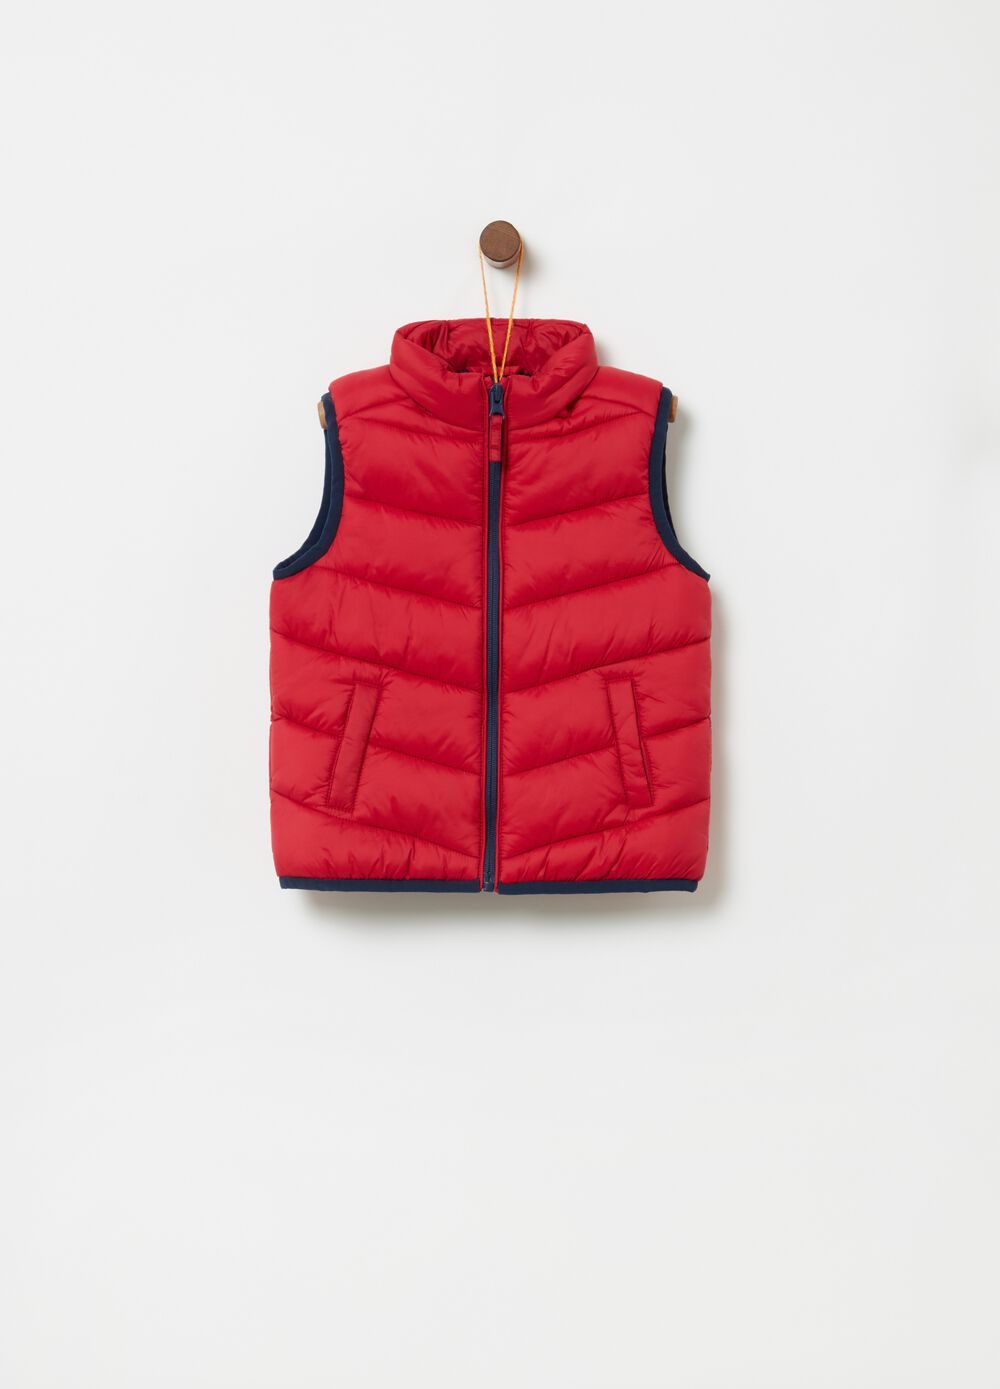 Padded gilet with pockets and zip